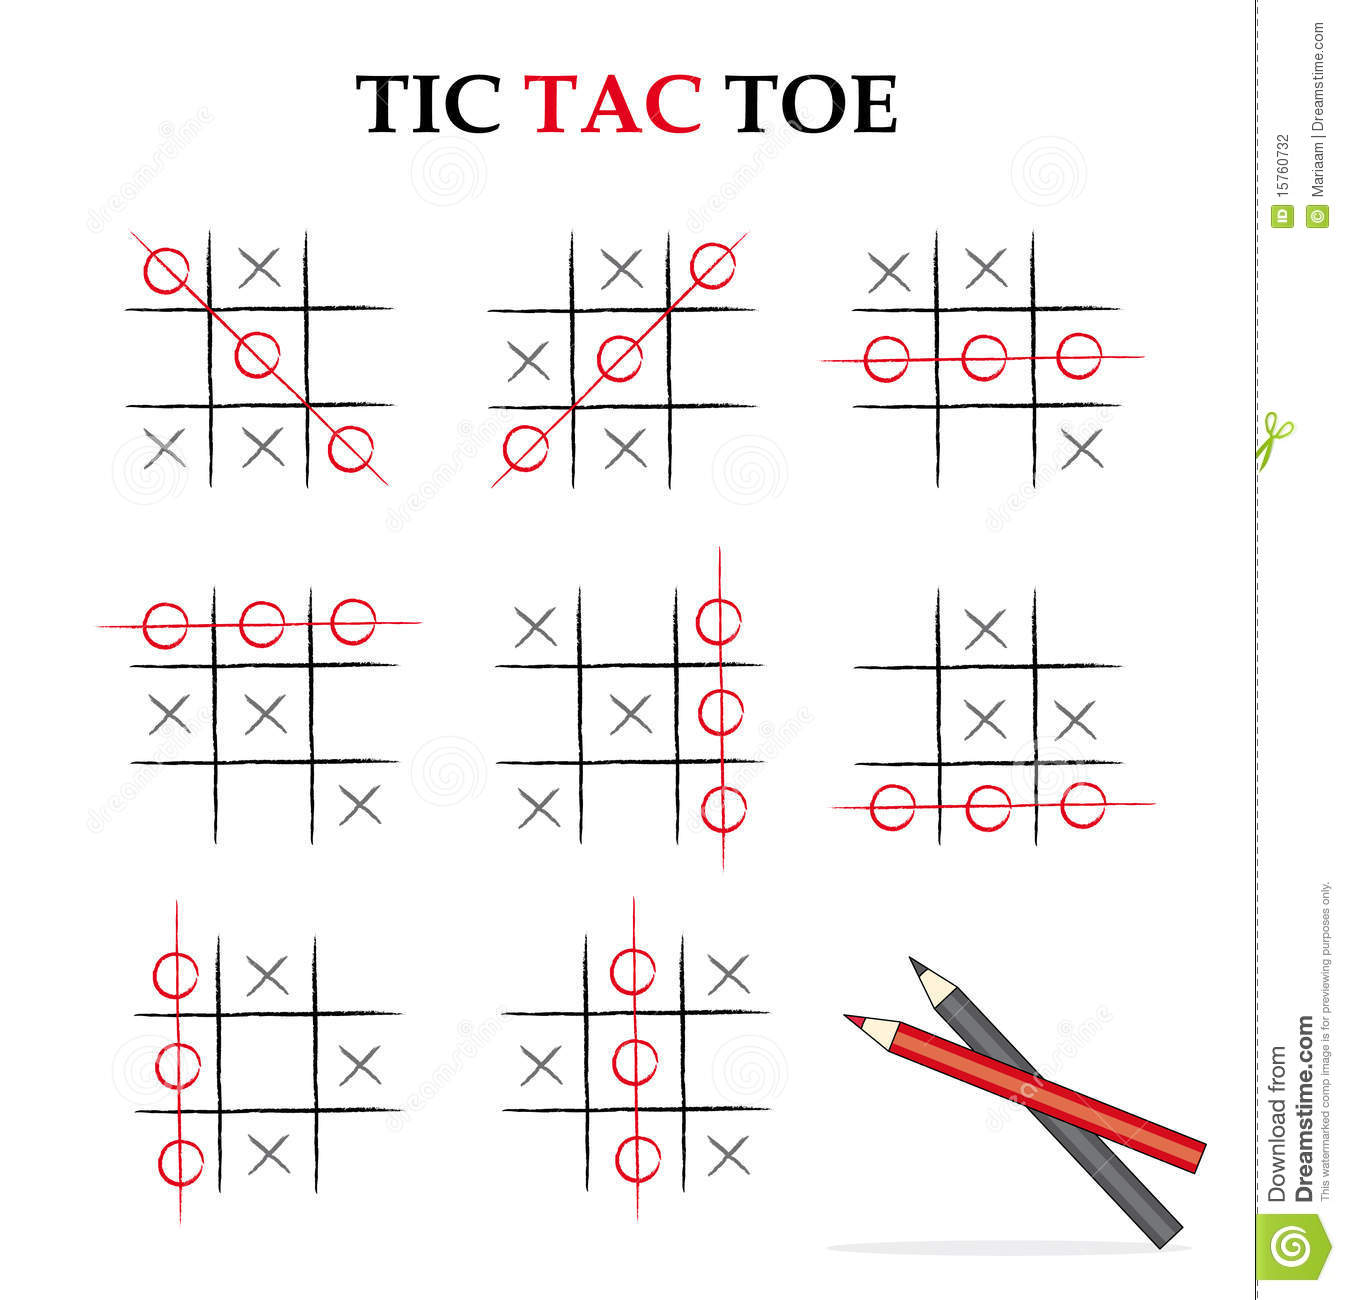 Tic Tac Toe Game!